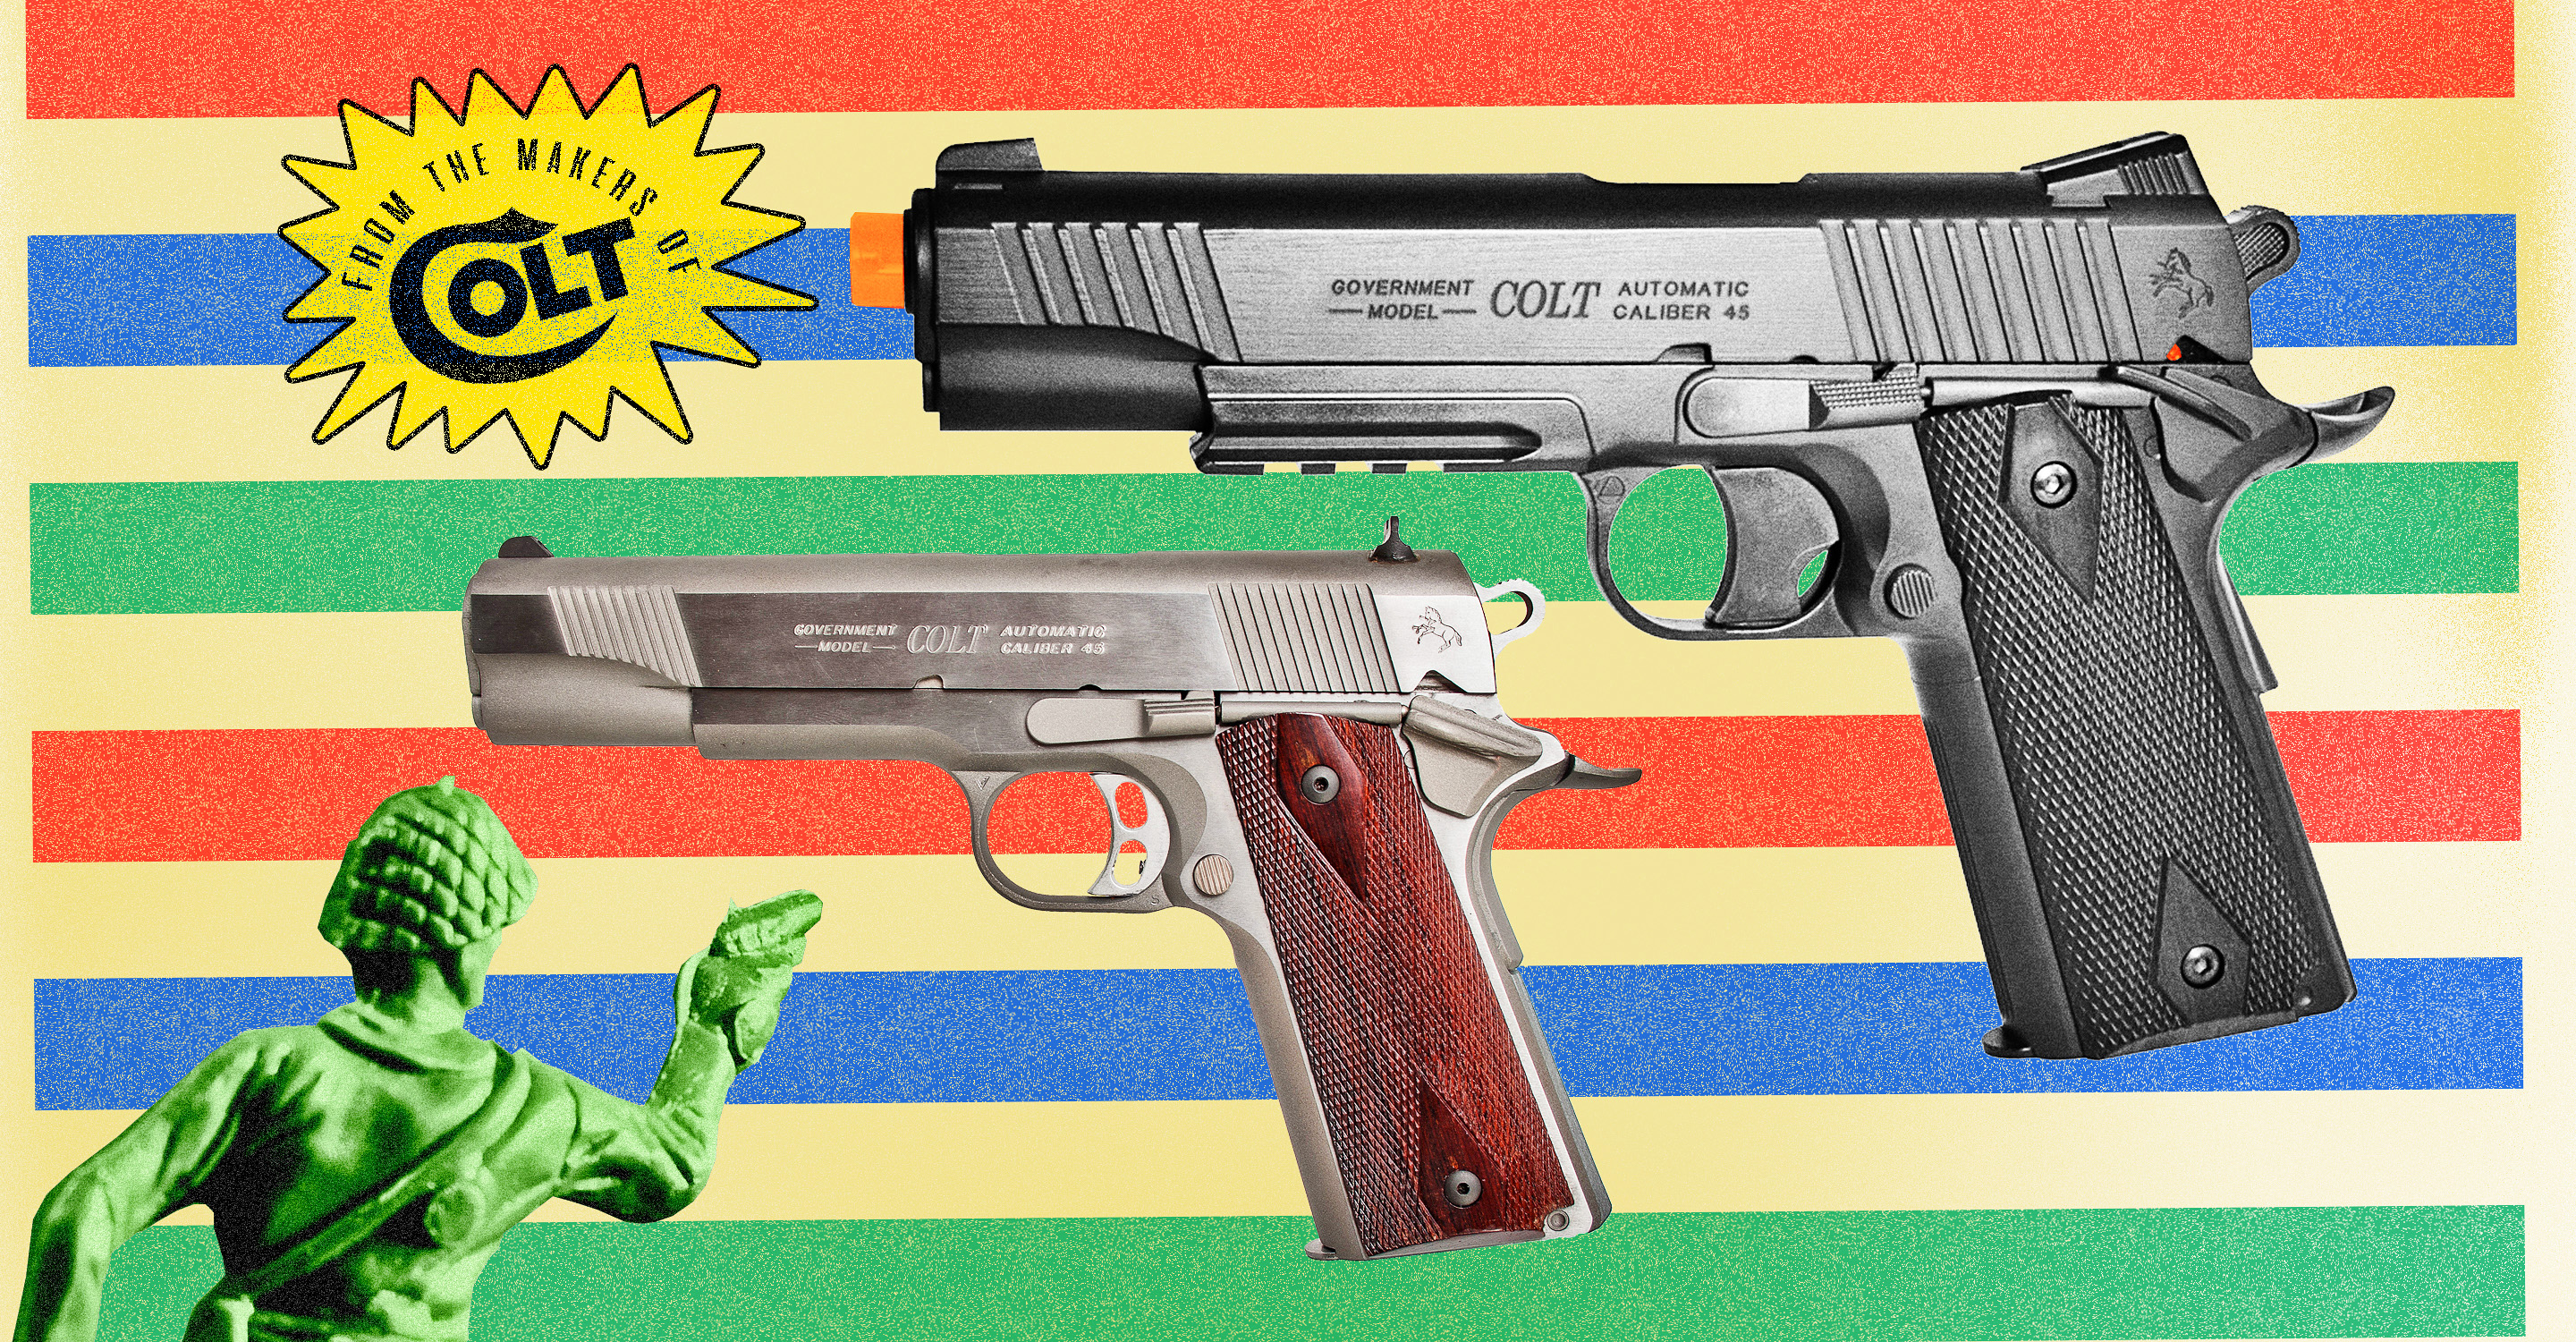 Gun Companies are Helping Toy Makers Design Replicas That Get Kids